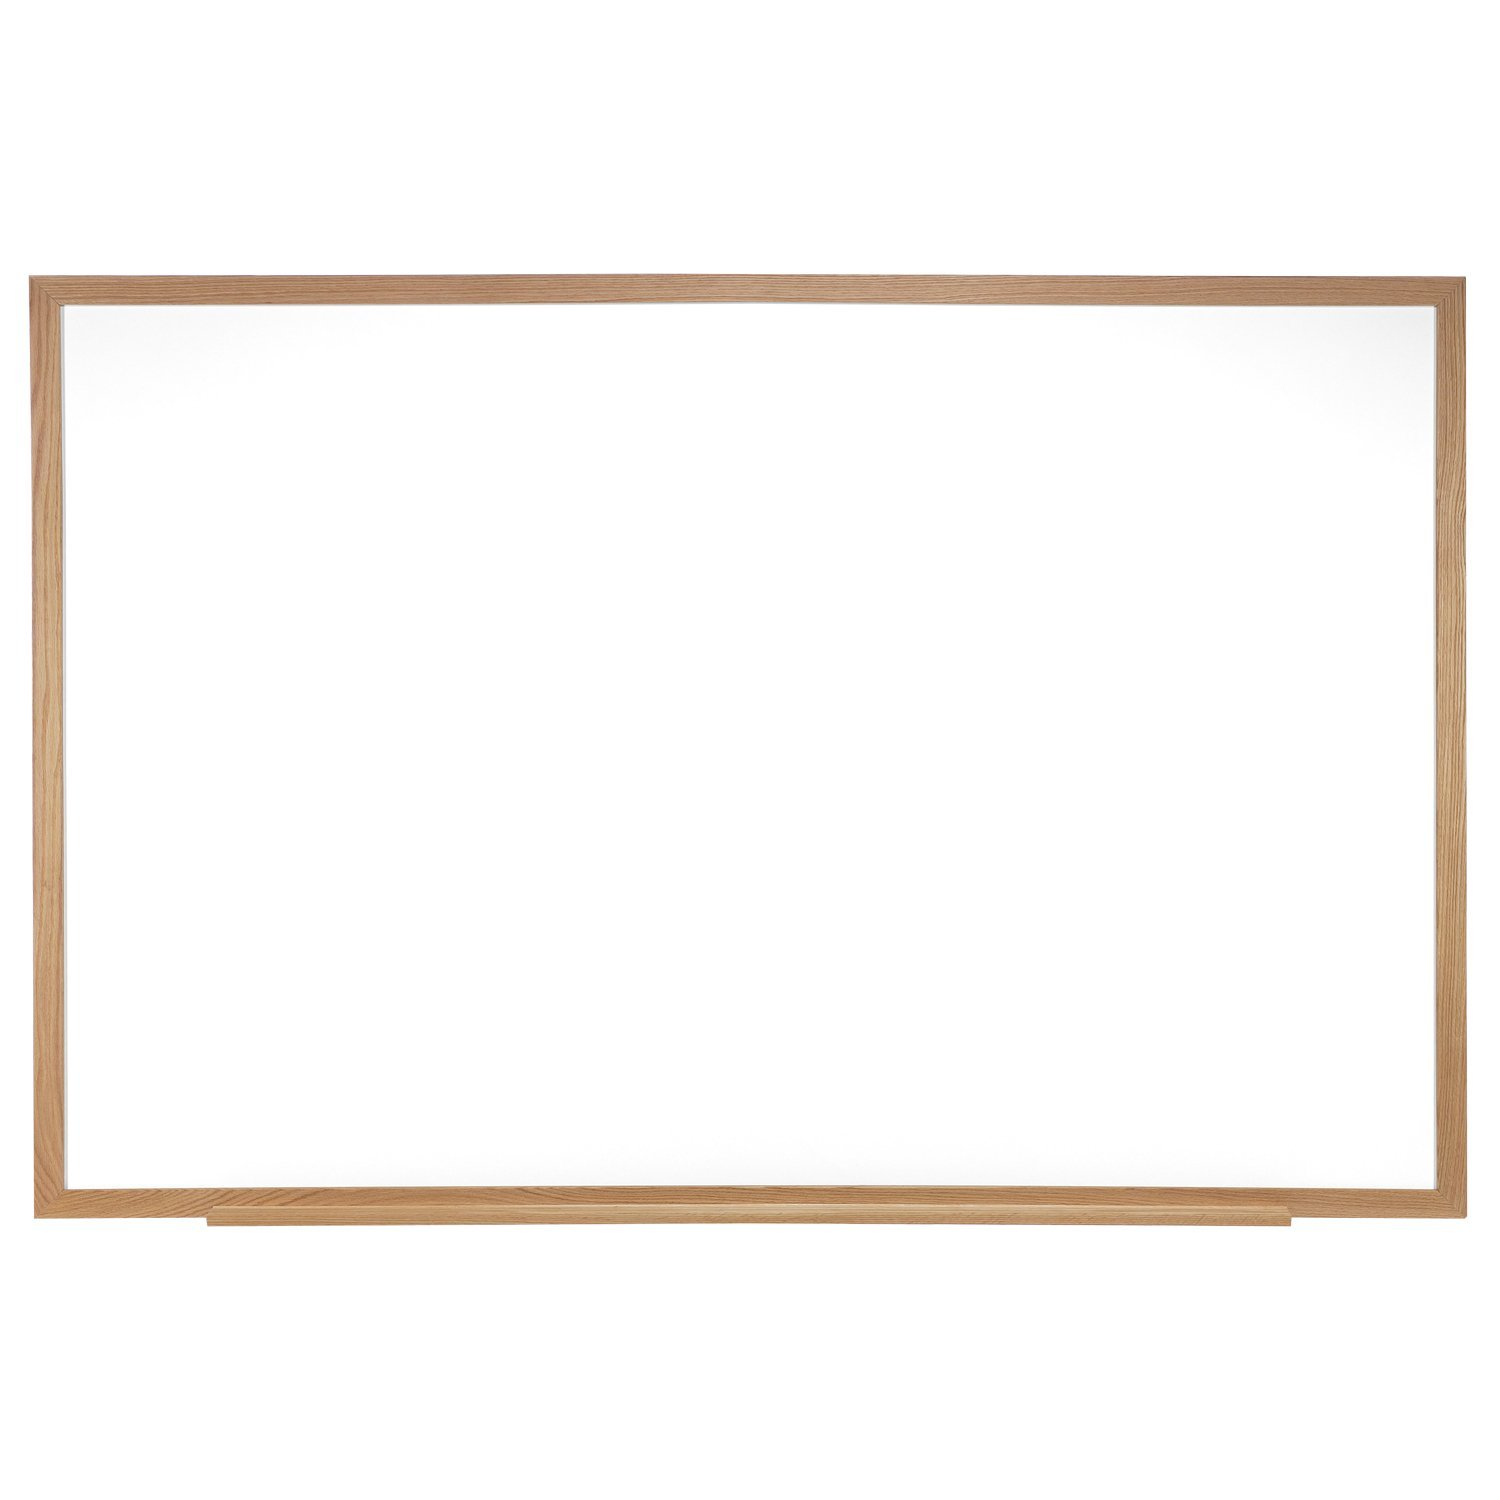 Ghent 4 x 12 Porcelain Magnetic Whiteboard, Wood Frame, 1 Marker, 1 Eraser, Made in the USA (M1W-412-4)